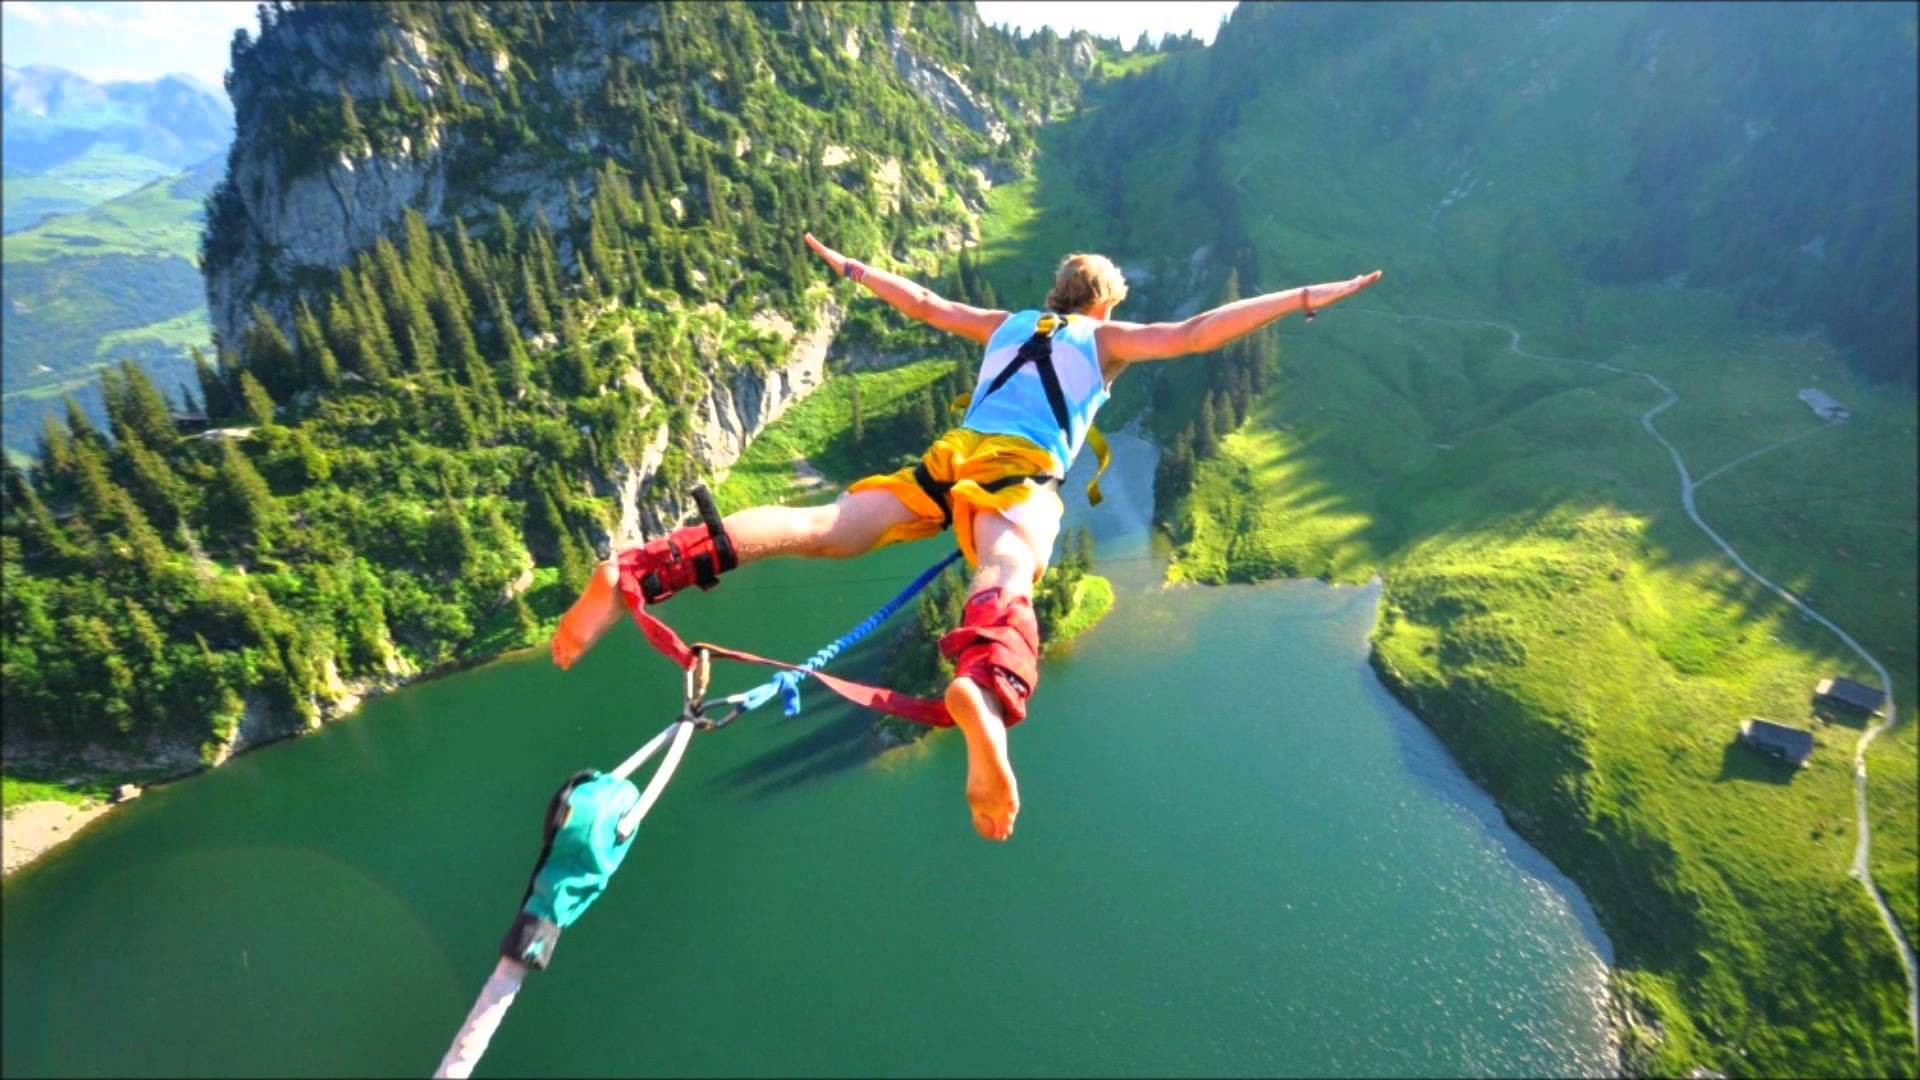 Bungee Jumping.7 Reasons To Go Bunjee Jumping Now By Checkin Story Checkin